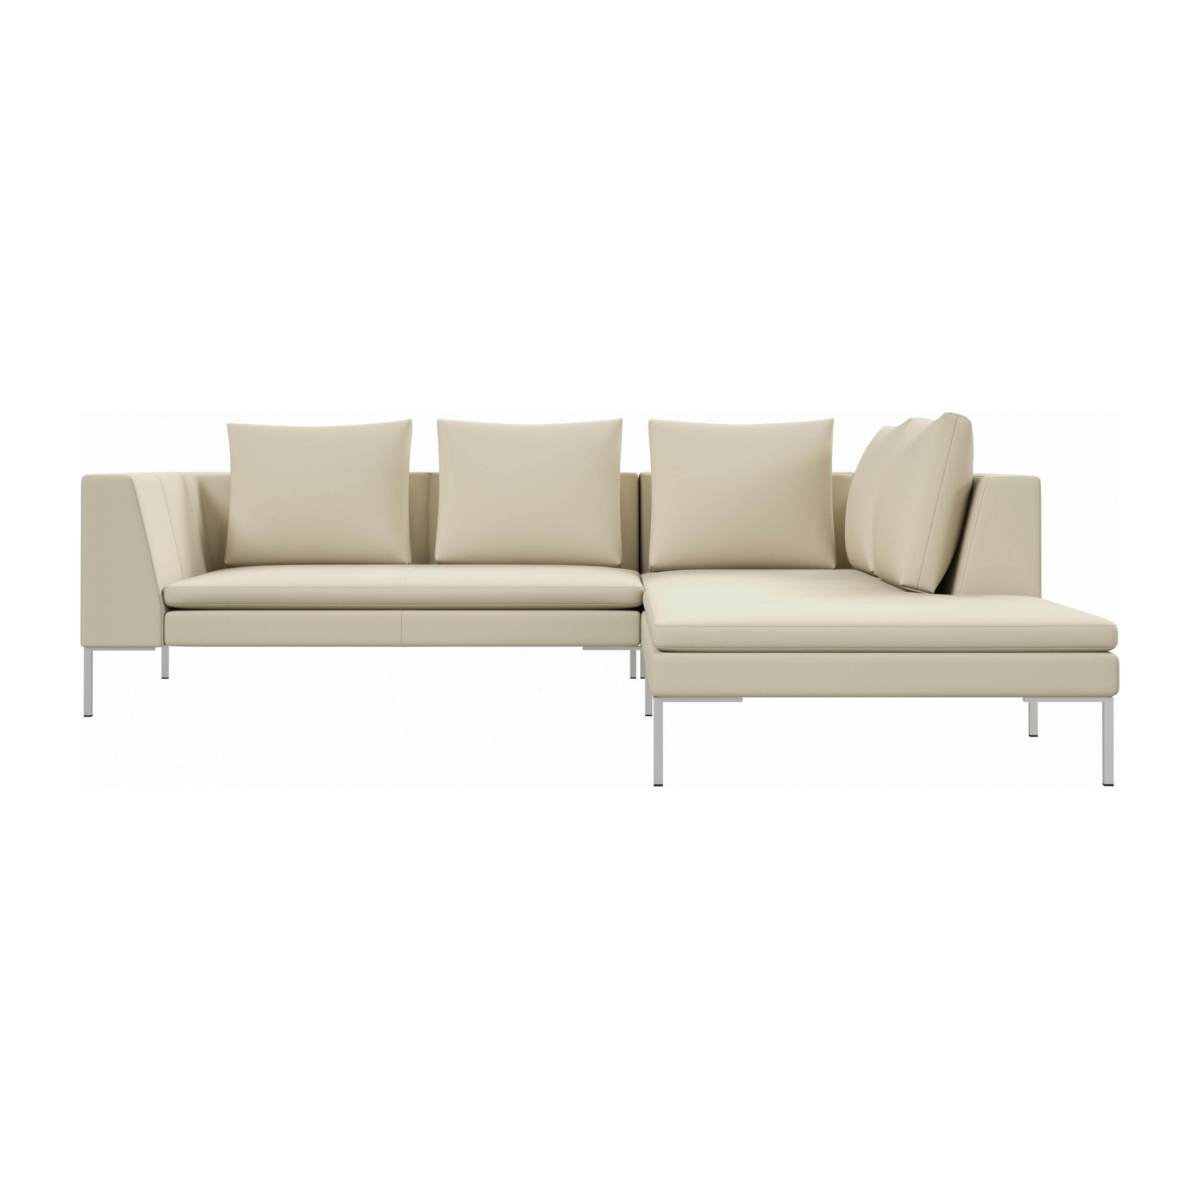 2 seater sofa with chaise longue on the right in Savoy semi-aniline leather, off white  n°1